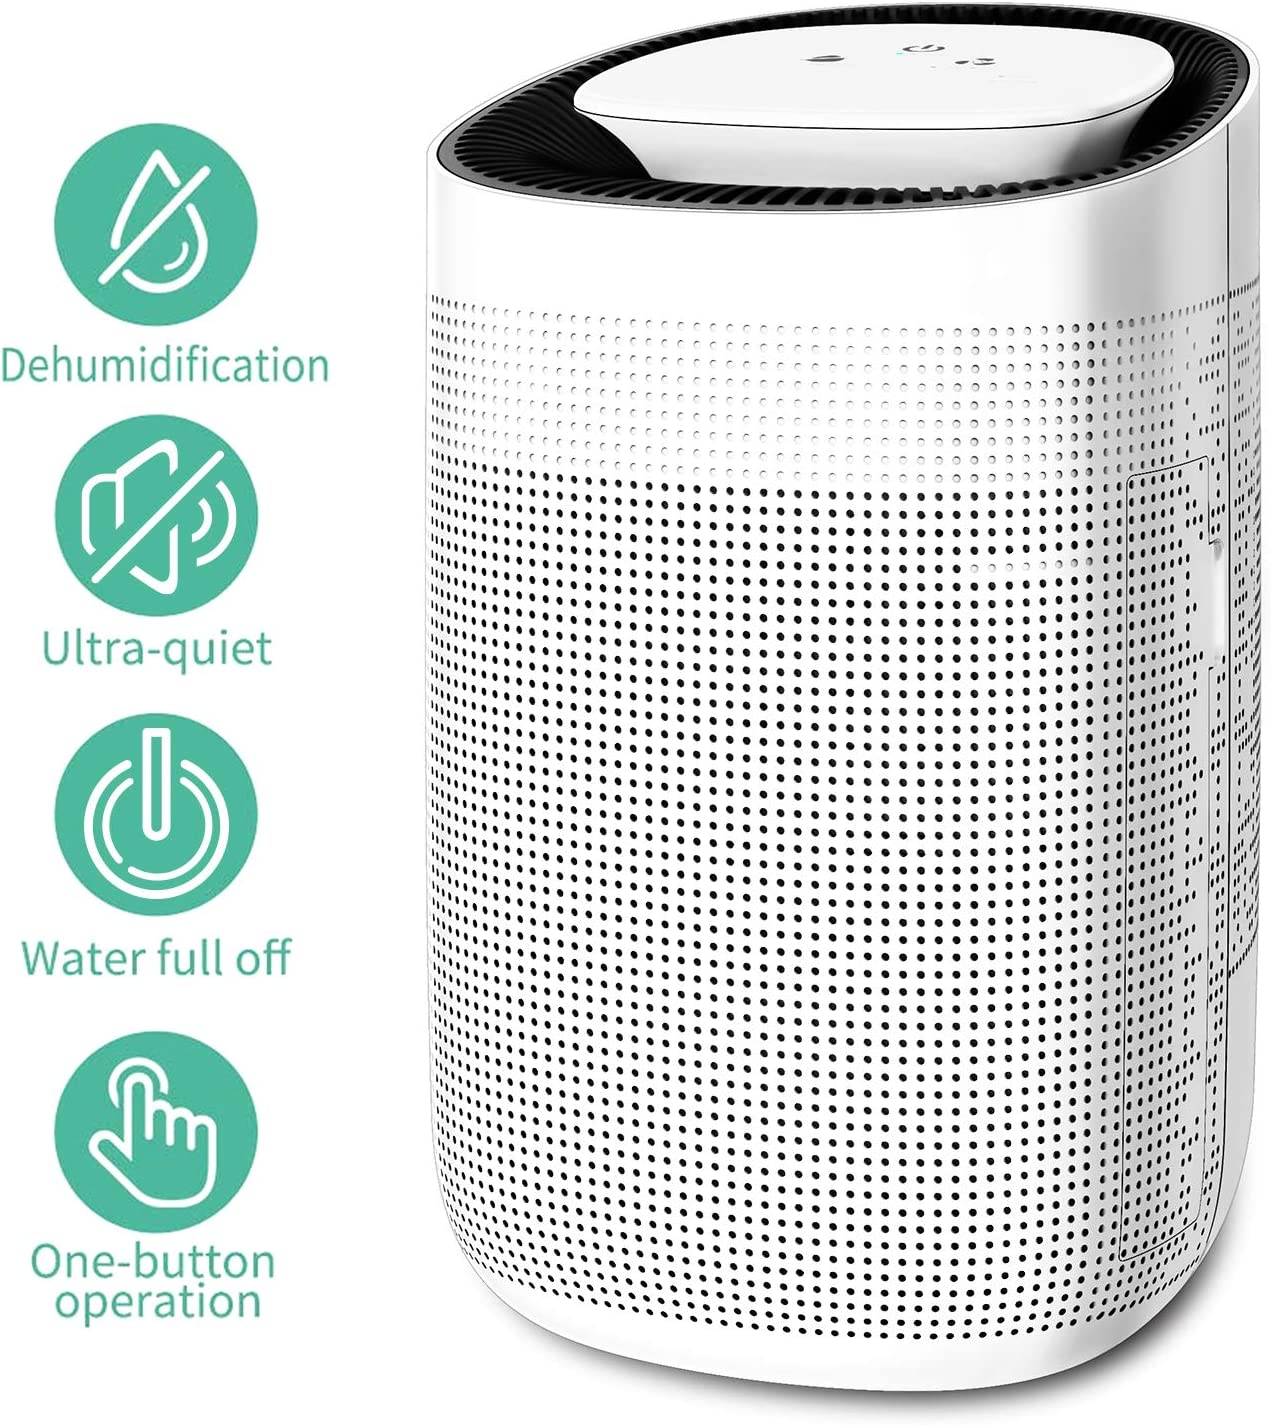 OTHWAY Cool Mist Humidifier 4L 1 Gallon Large Humidifier, Ultrasonic Humidification, Remote Control, Waterless Shut-Off, 360 Directional Spout, Adjustable Timer Settings, Vaporizer Humidifier